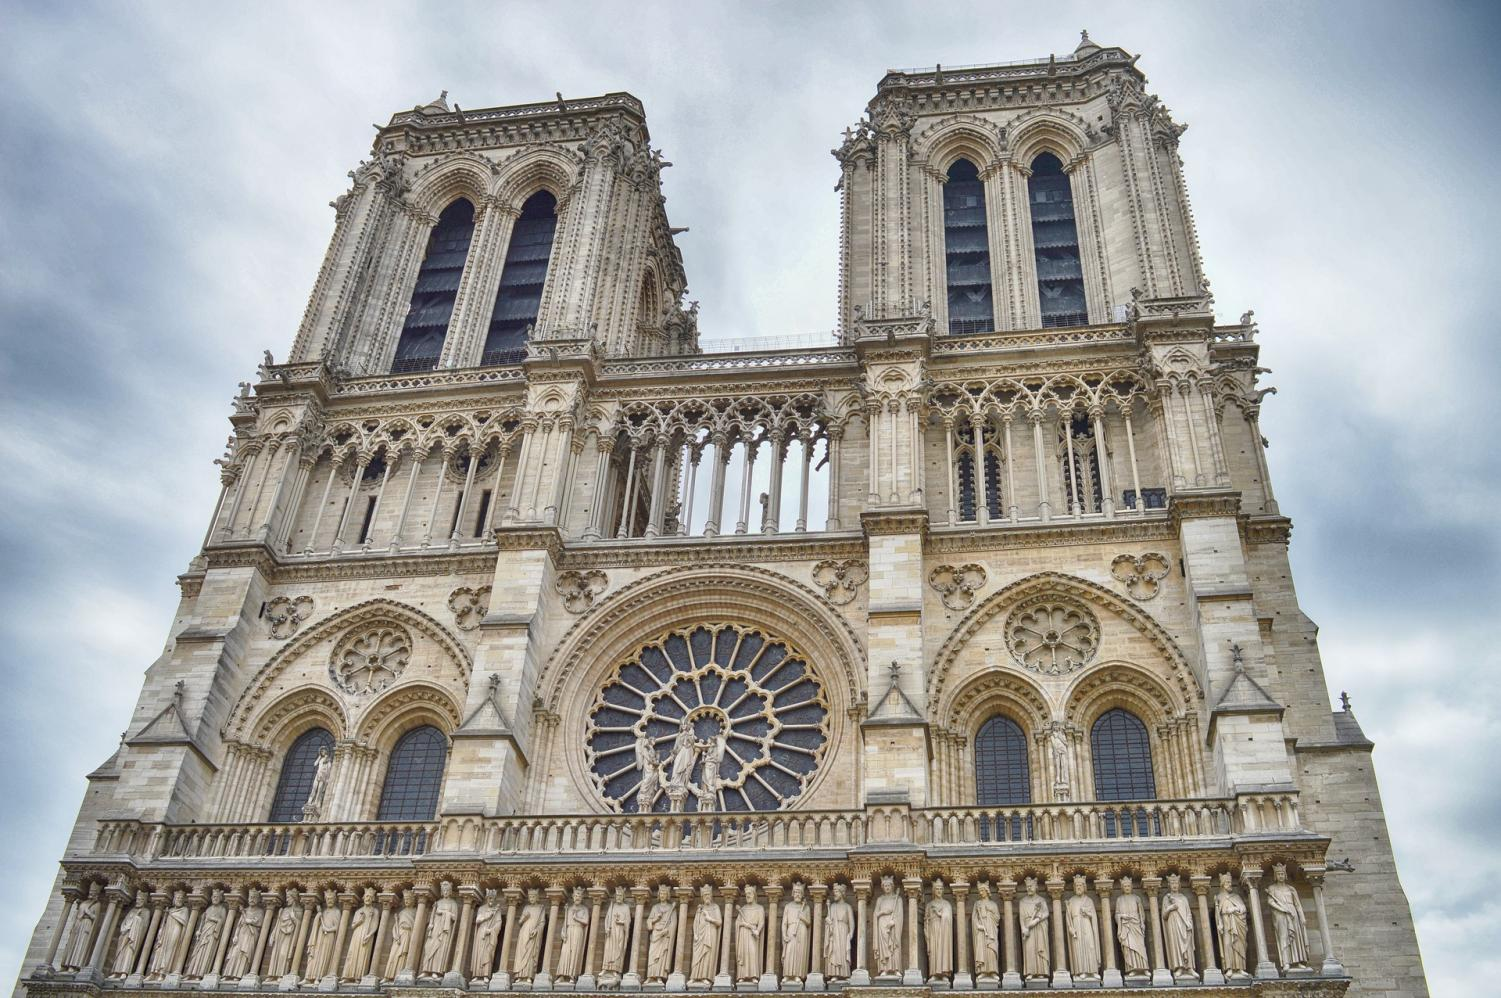 According to the Washington Post, an estimated $835 million had been offered to save the cathedral in one week alone, and the amount continues to climb. https://creativecommons.org/licenses/by/2.0/